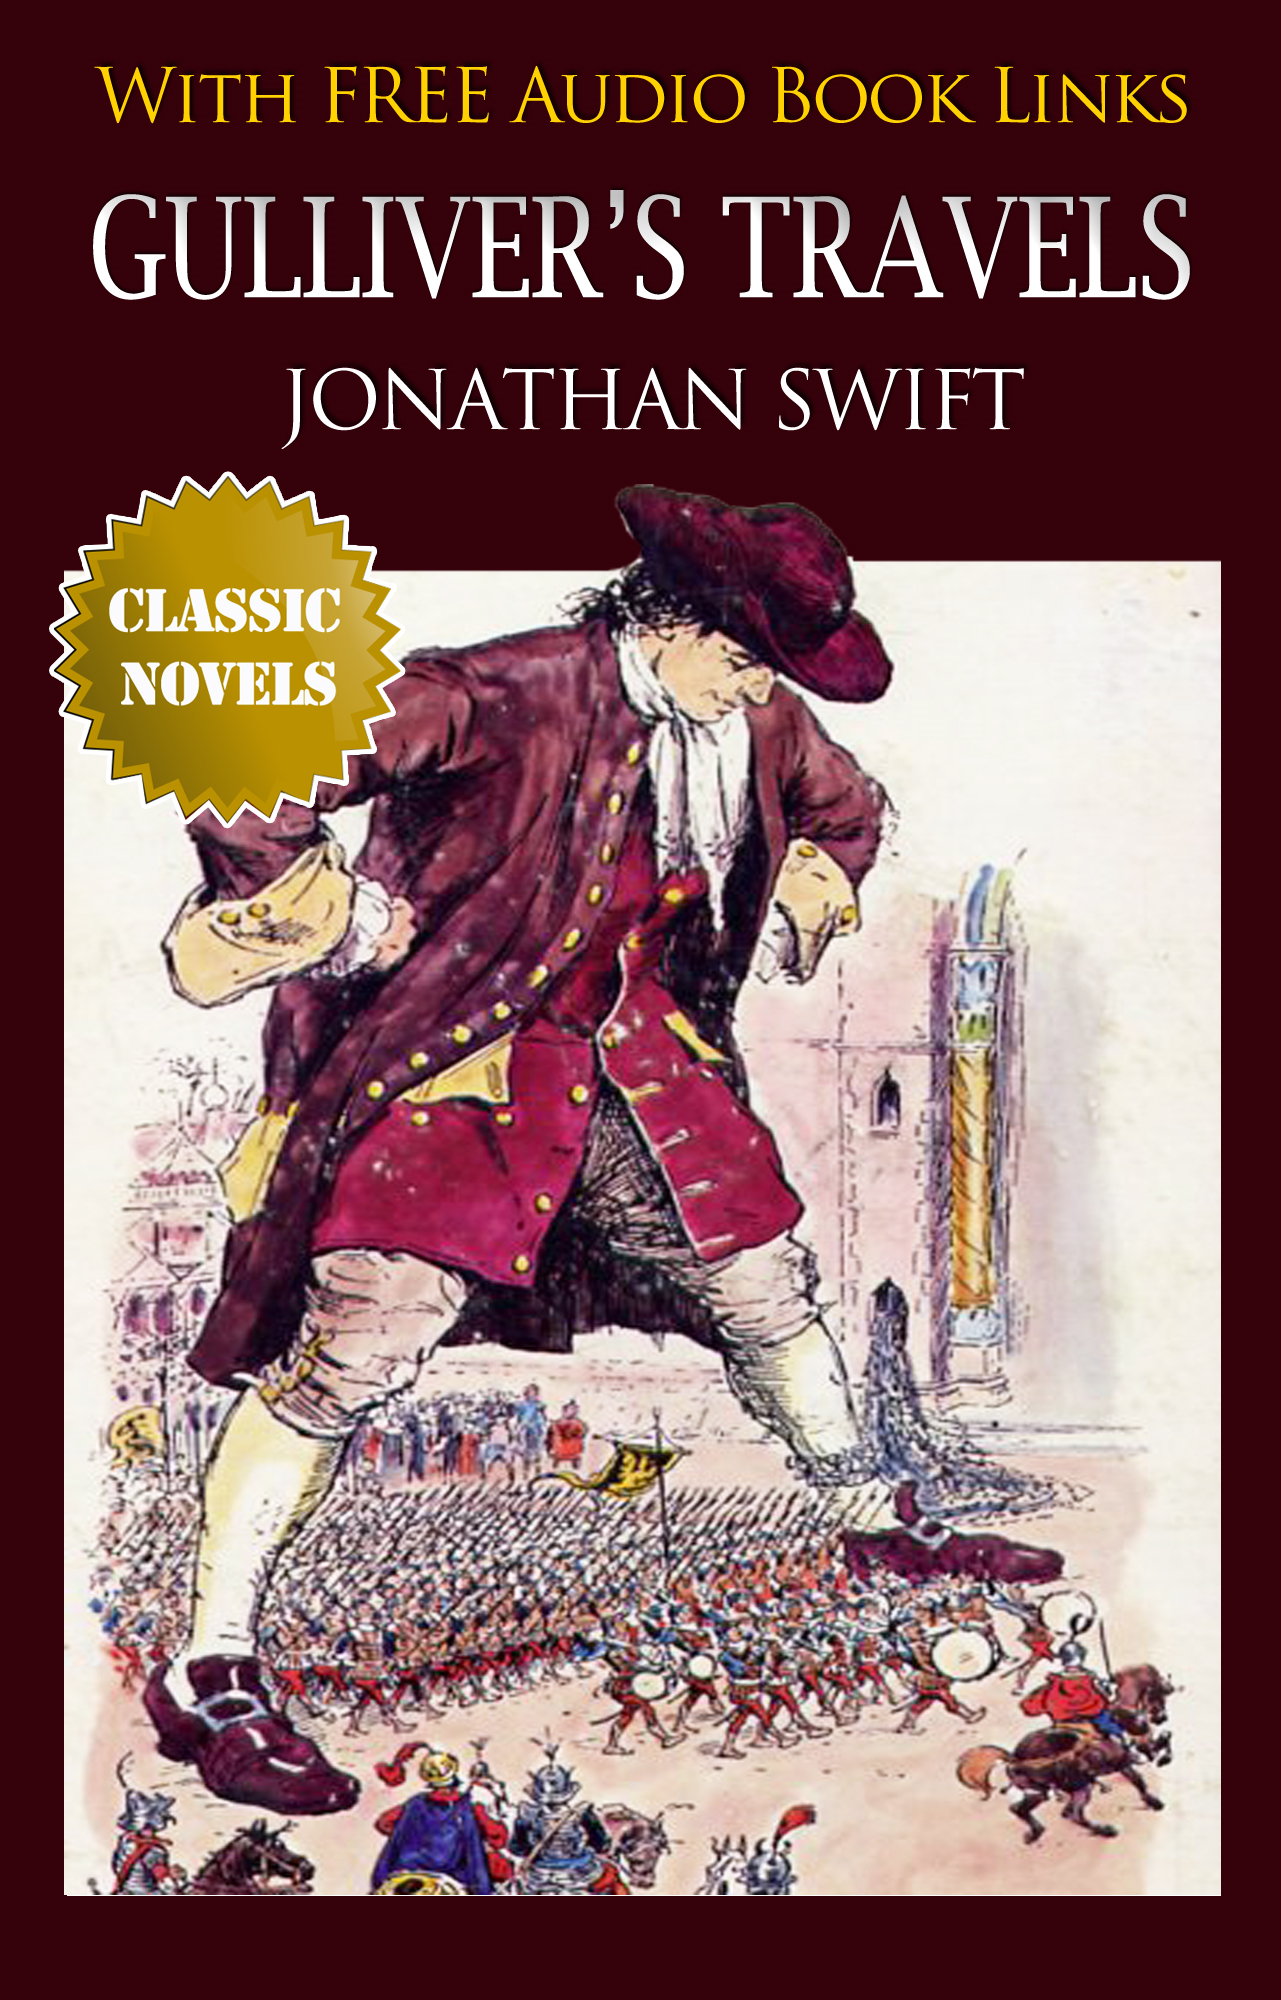 an analysis of the book gullivers travels by jonathan swift Gulliver's travels is an all time literary classic by jonathan swift read a review of the play here.